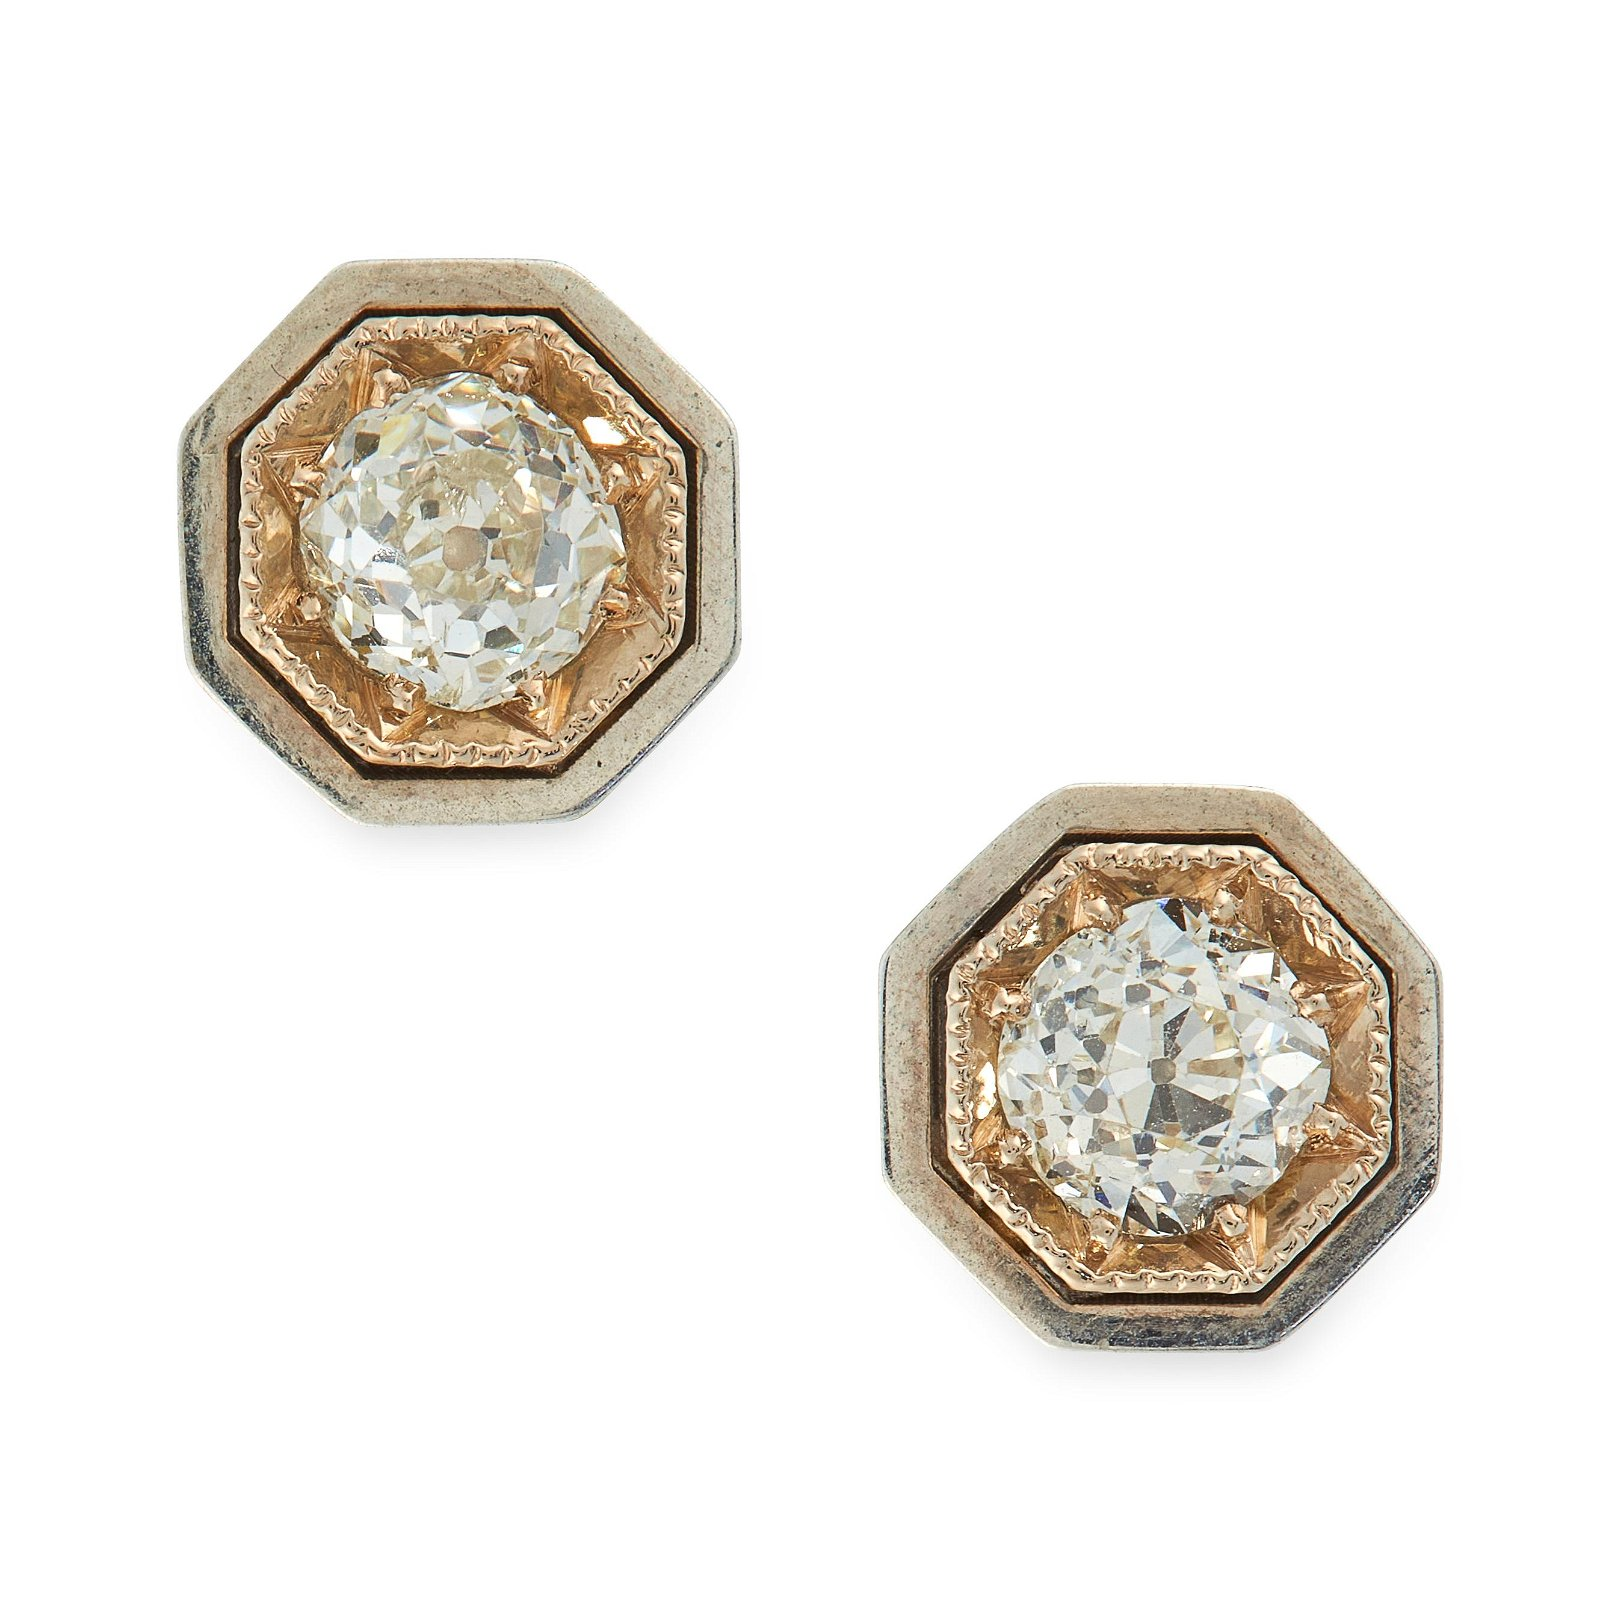 A PAIR OF DIAMOND STUD EARRINGS in 18ct white gold,